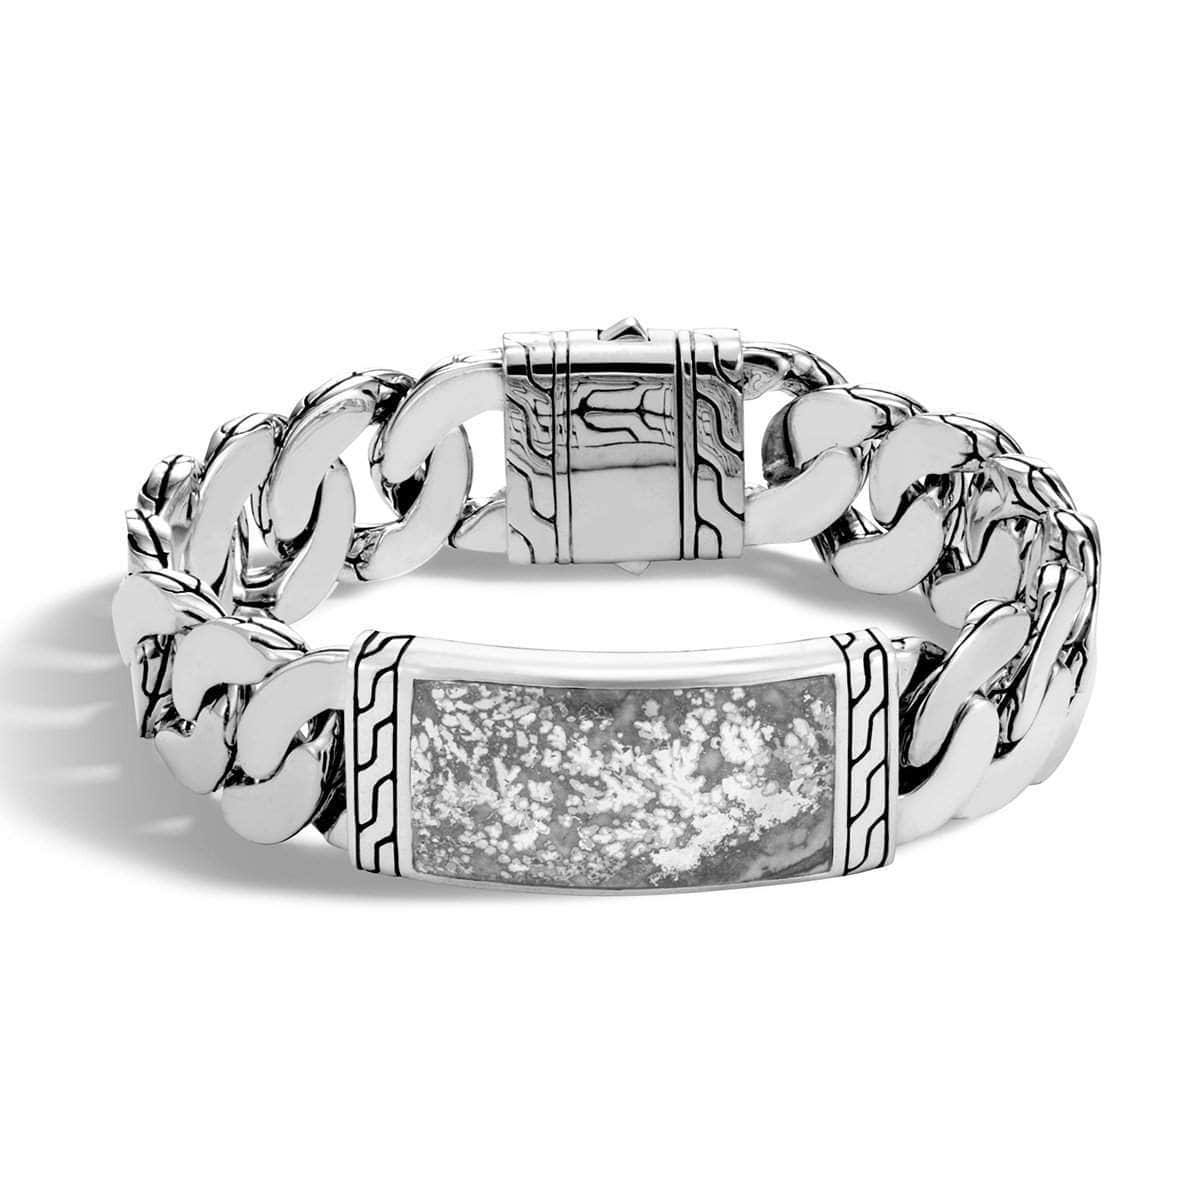 Classic Chain Men's Silver ID Calcite Bracelet - BMS9995581SCC-John Hardy-Renee Taylor Gallery